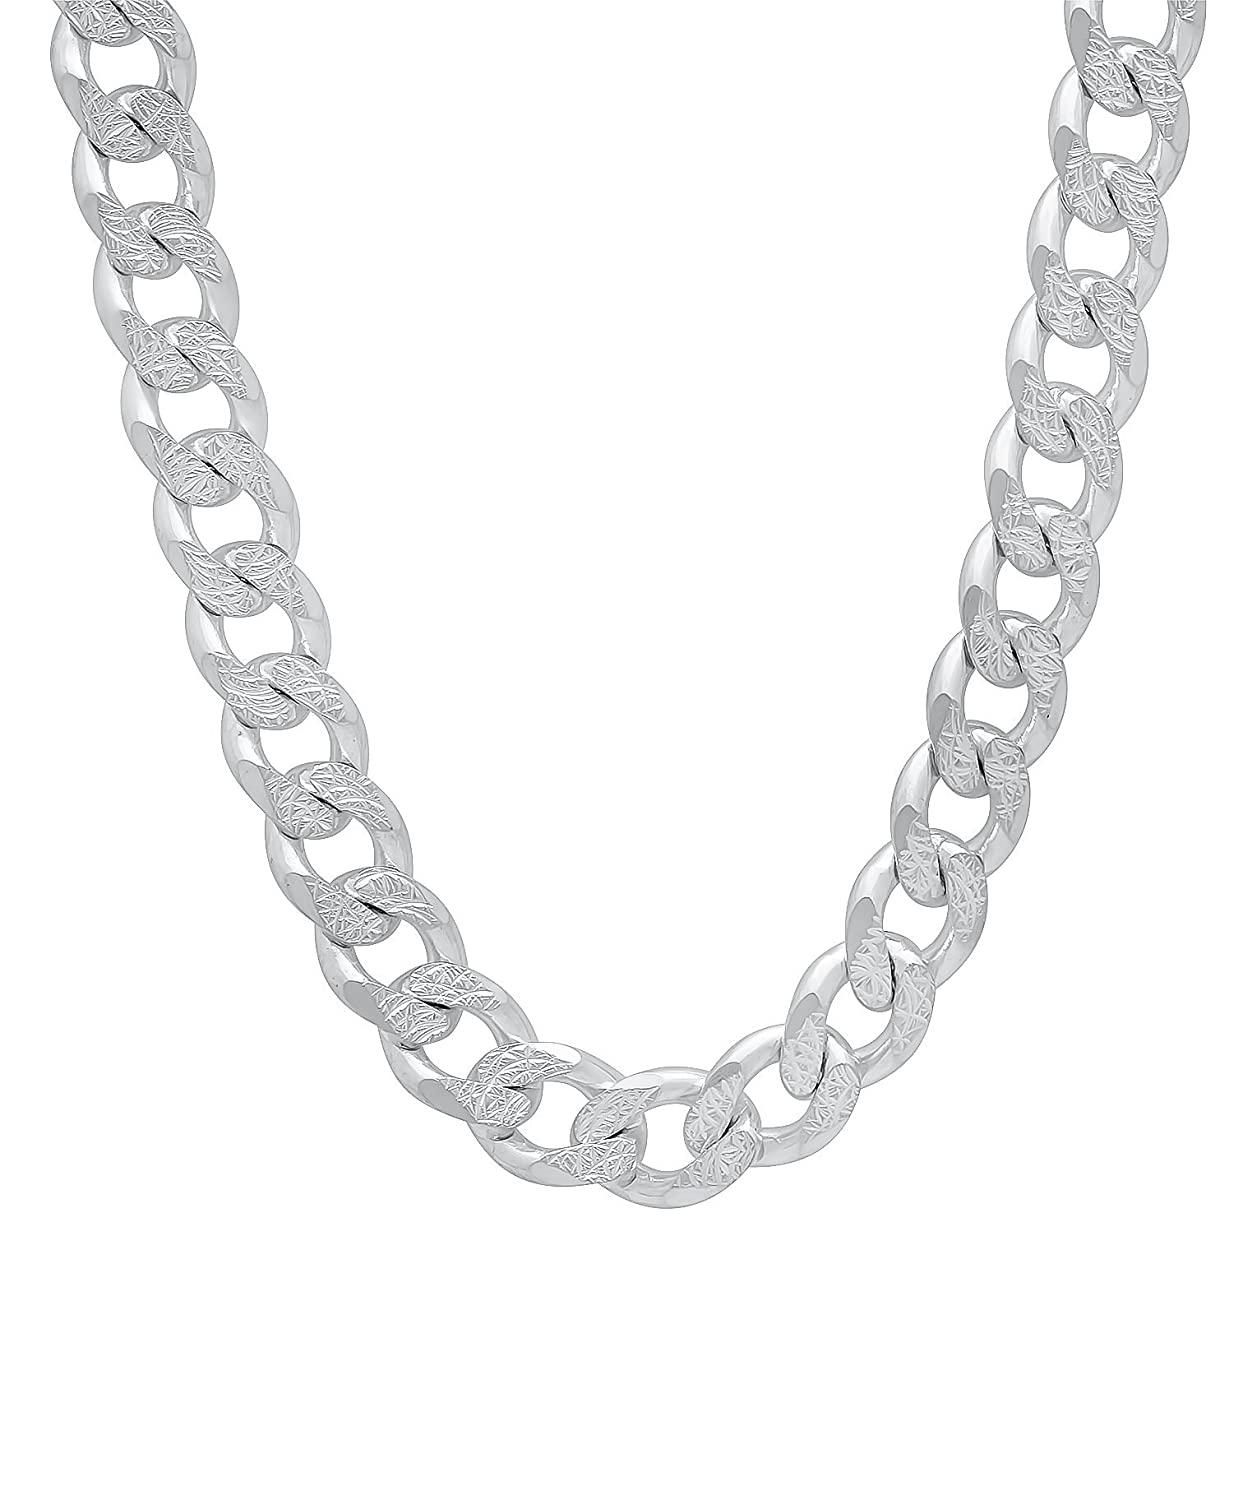 8mm Curb Necklace Chain Sterling Silver 925 30g 24 Designer Inspired